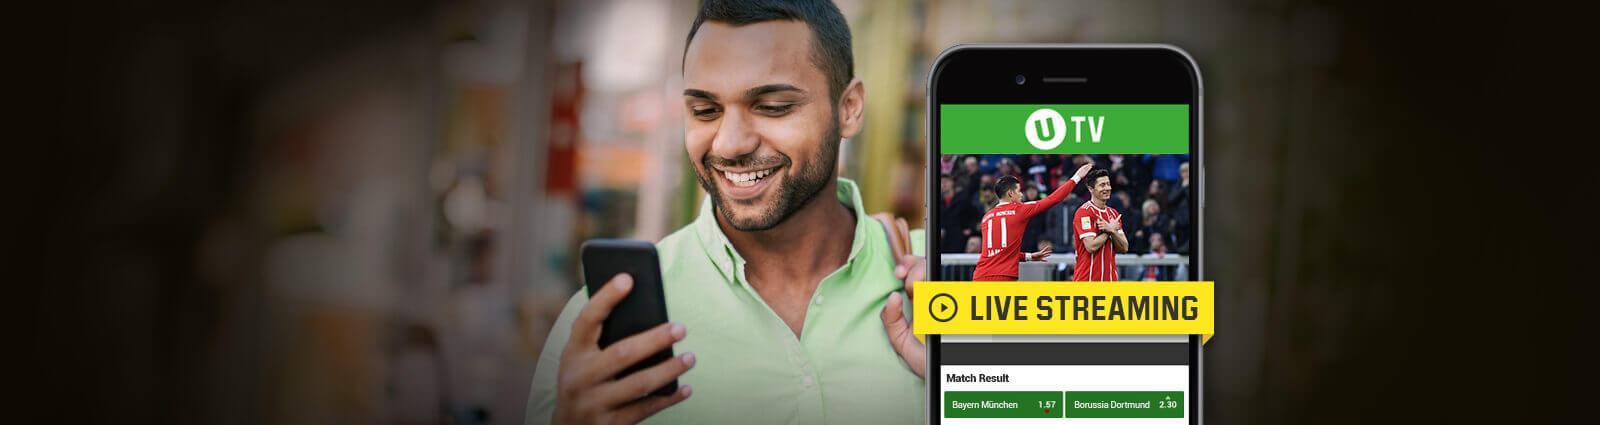 bundesliga live streaming unibet